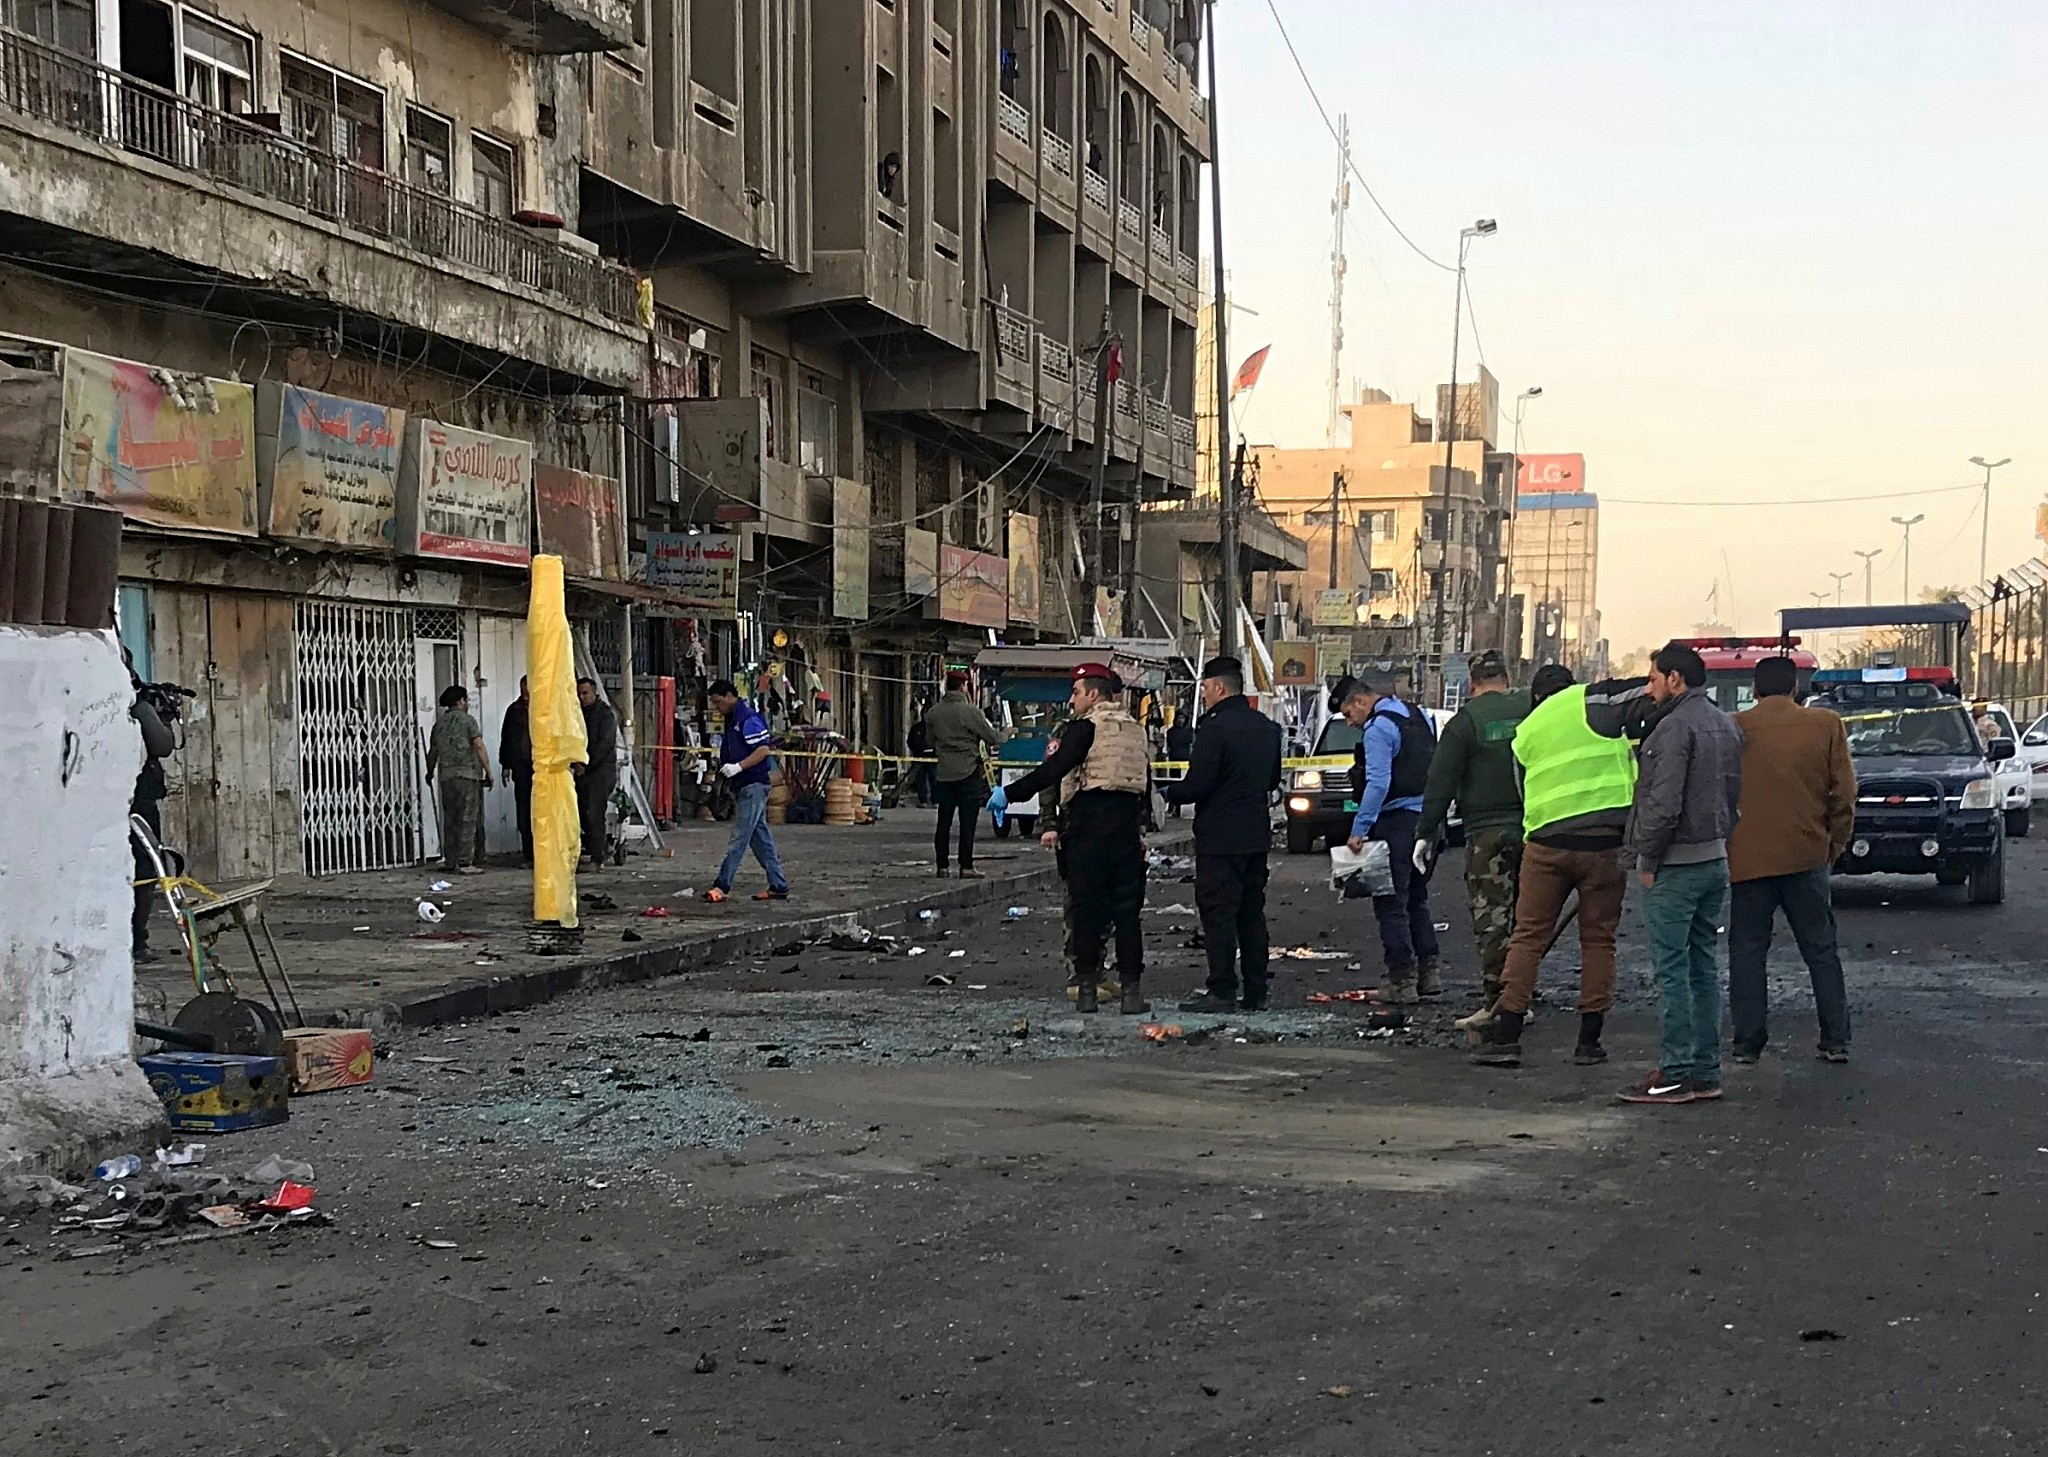 26 killed, 90 injured in Baghdad twin suicide blasts | The ...